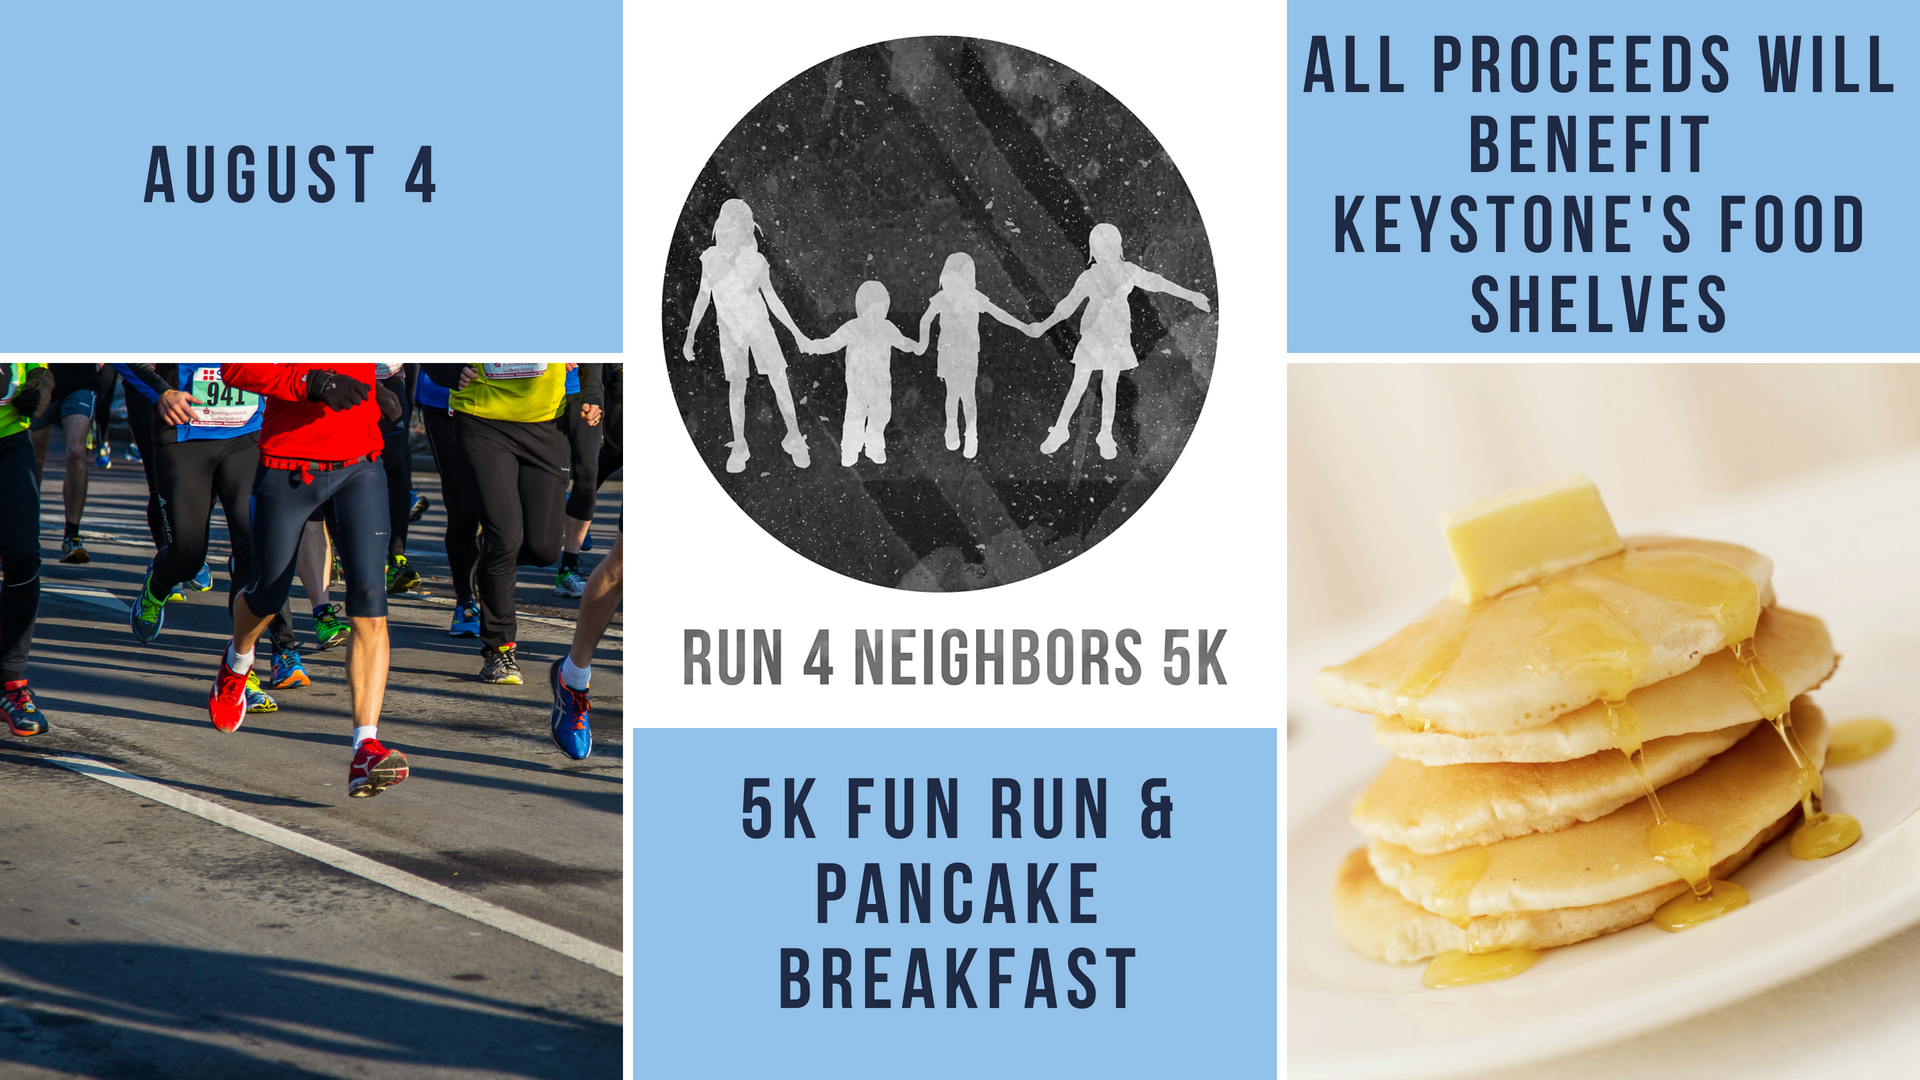 Run 4 Neighbors 5K and Breakfast Event